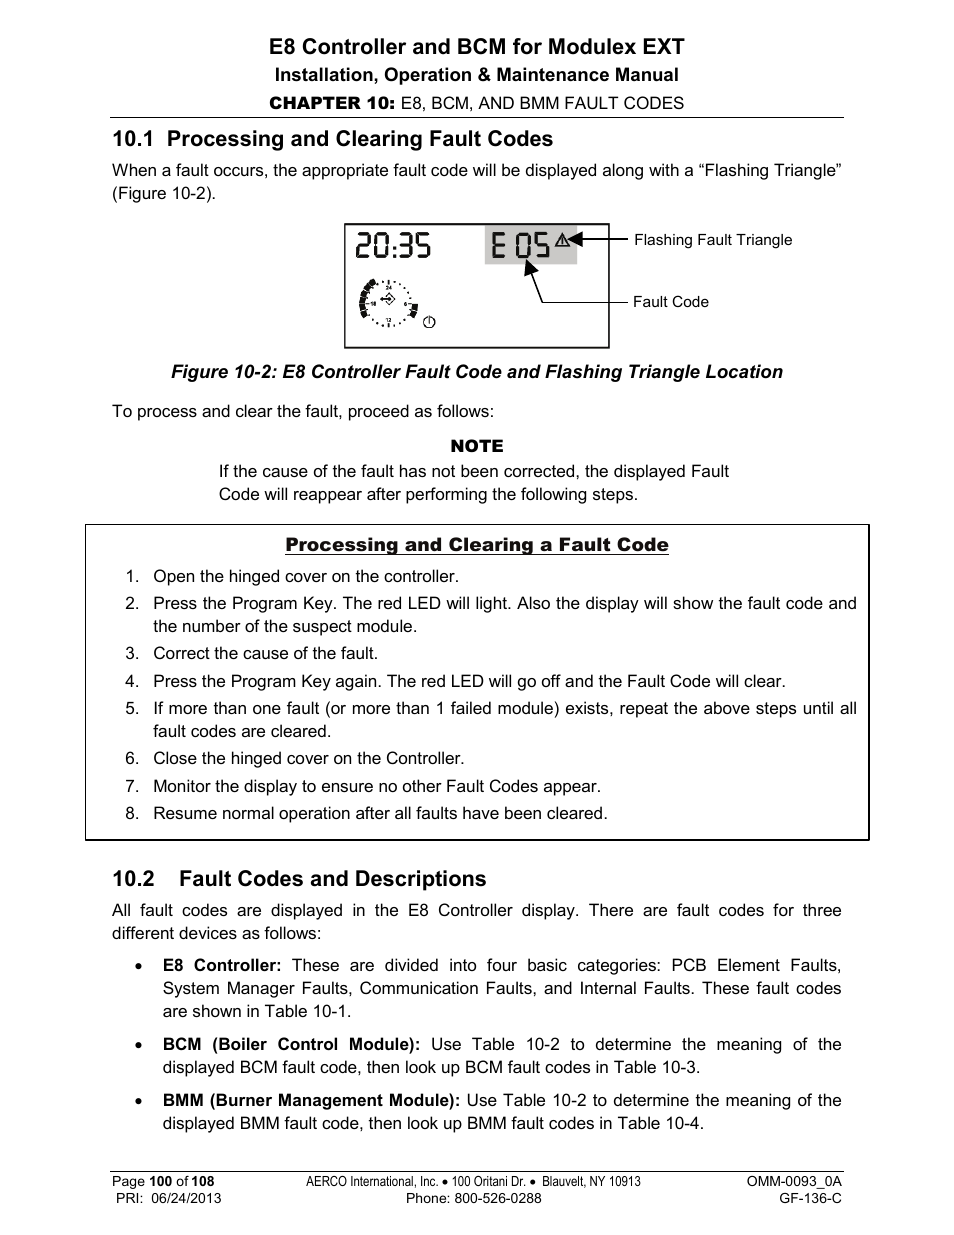 1 processing and clearing fault codes, 2 fault codes and